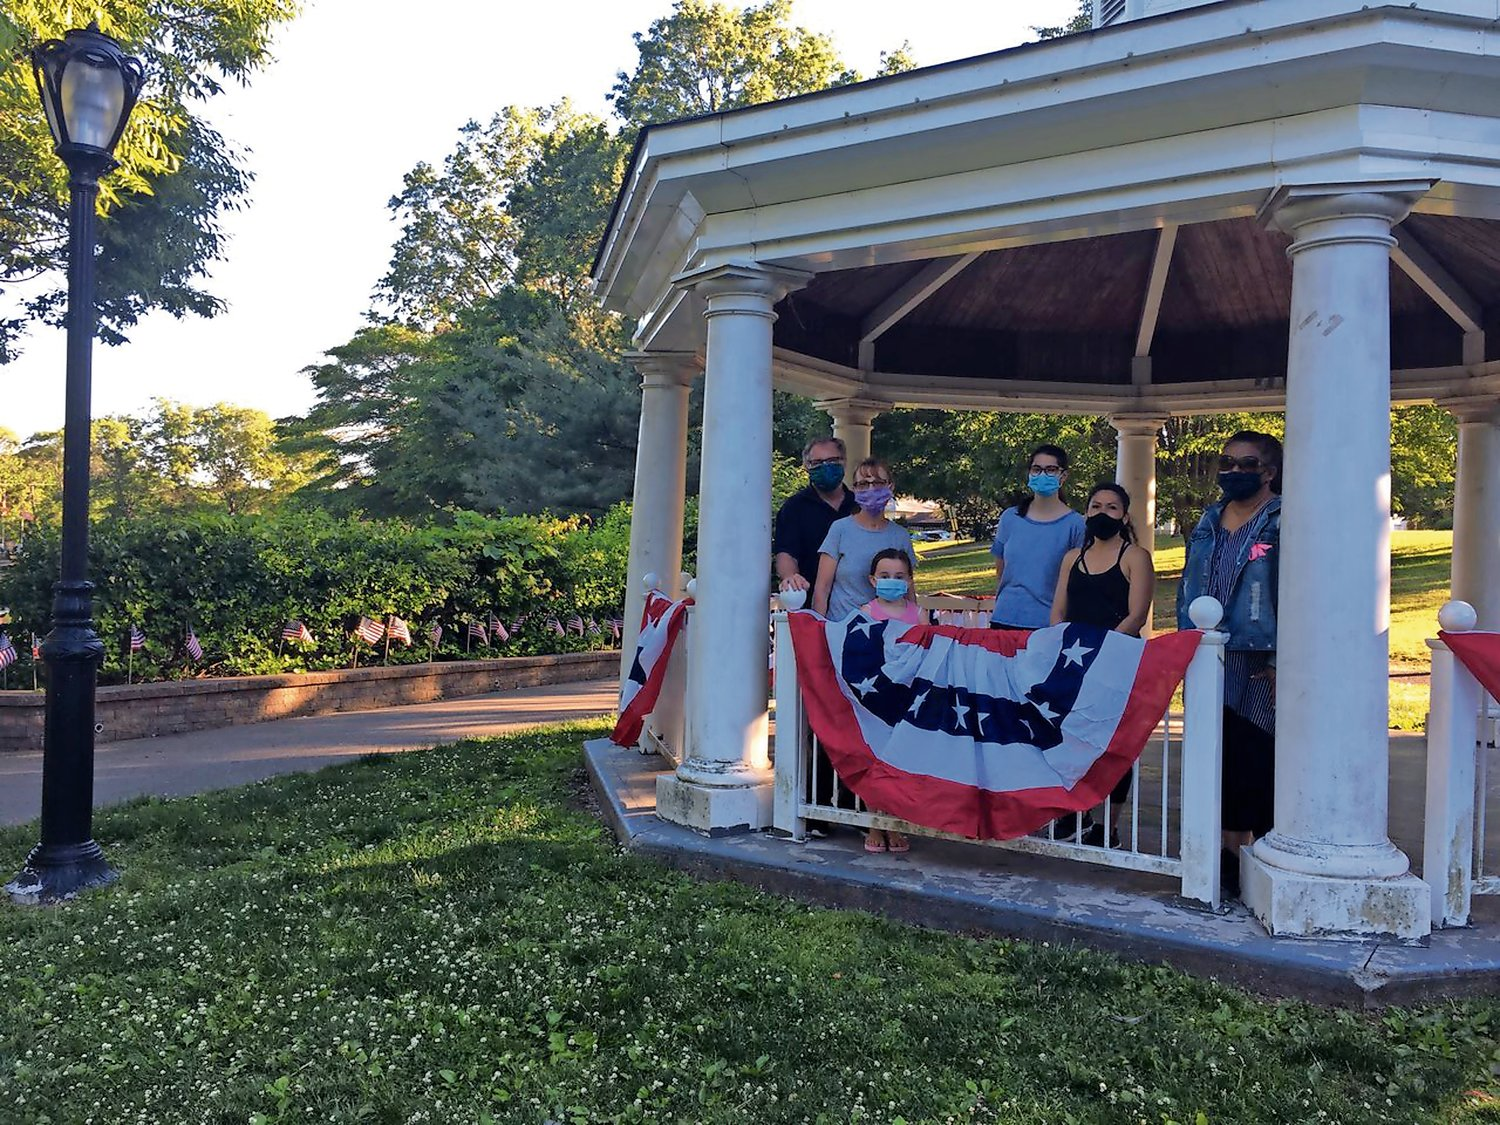 The West Hempstead Community Support Association gathered at Hall's Pond Park to place flags at the park last month.